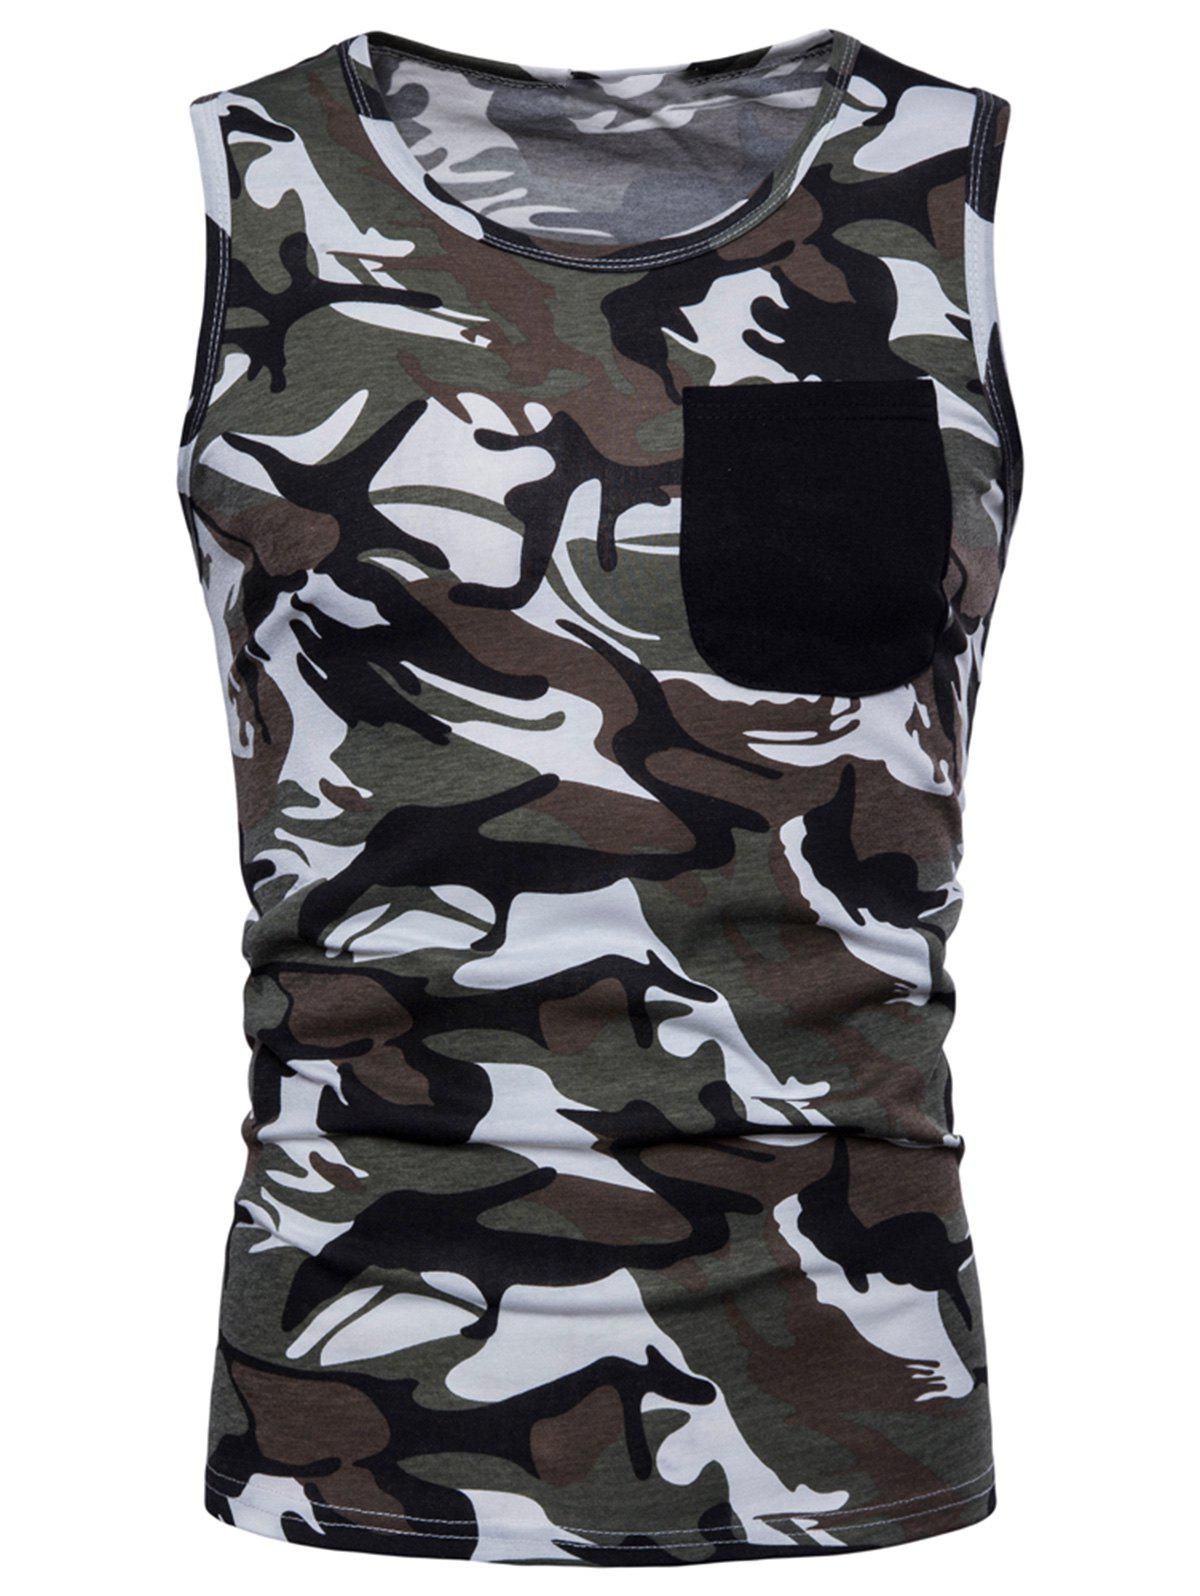 Buy Pocket Camo Print Tank Top